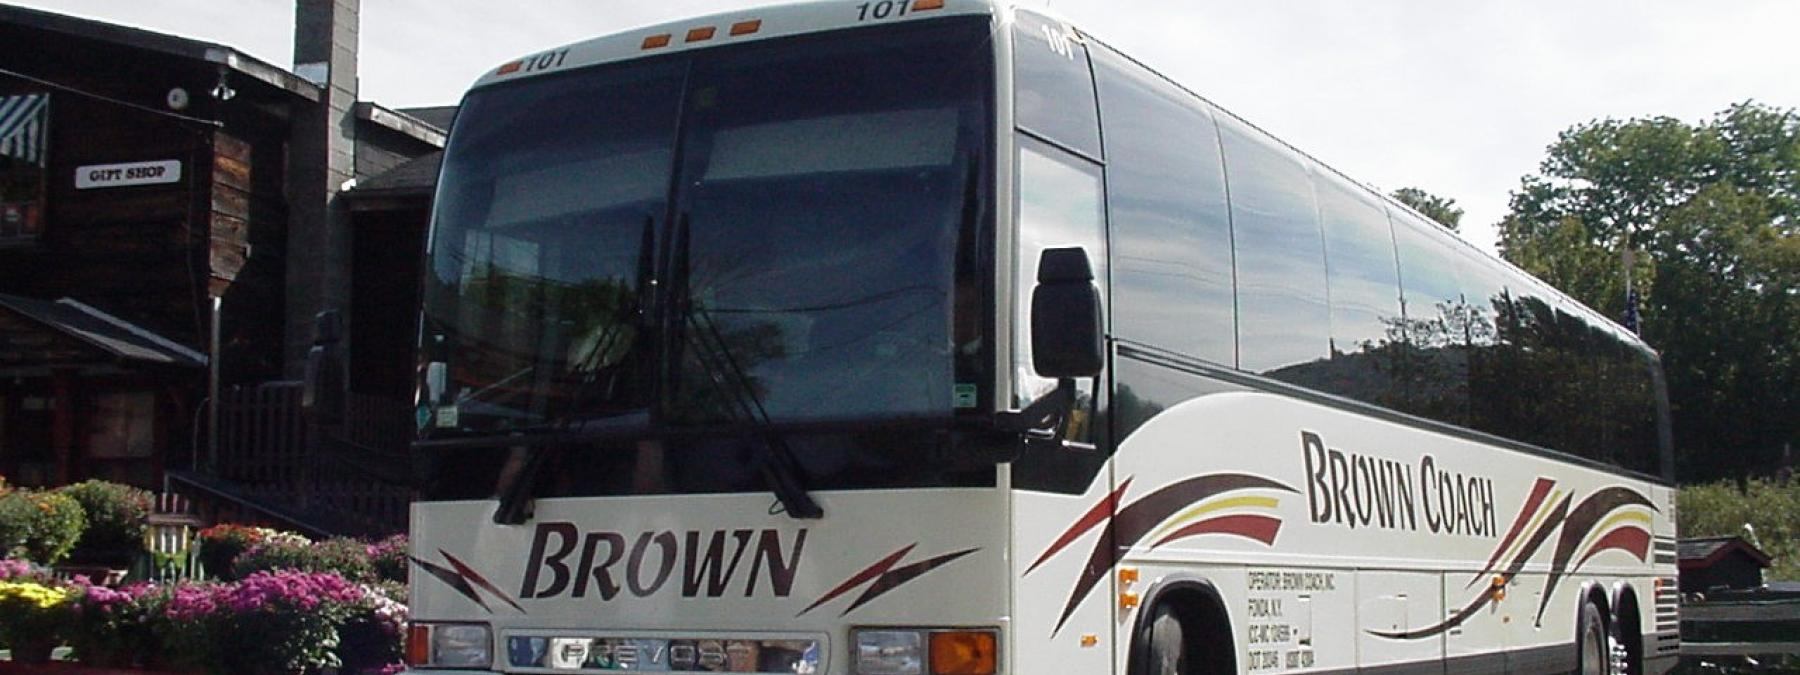 Group Motorcoach Tours